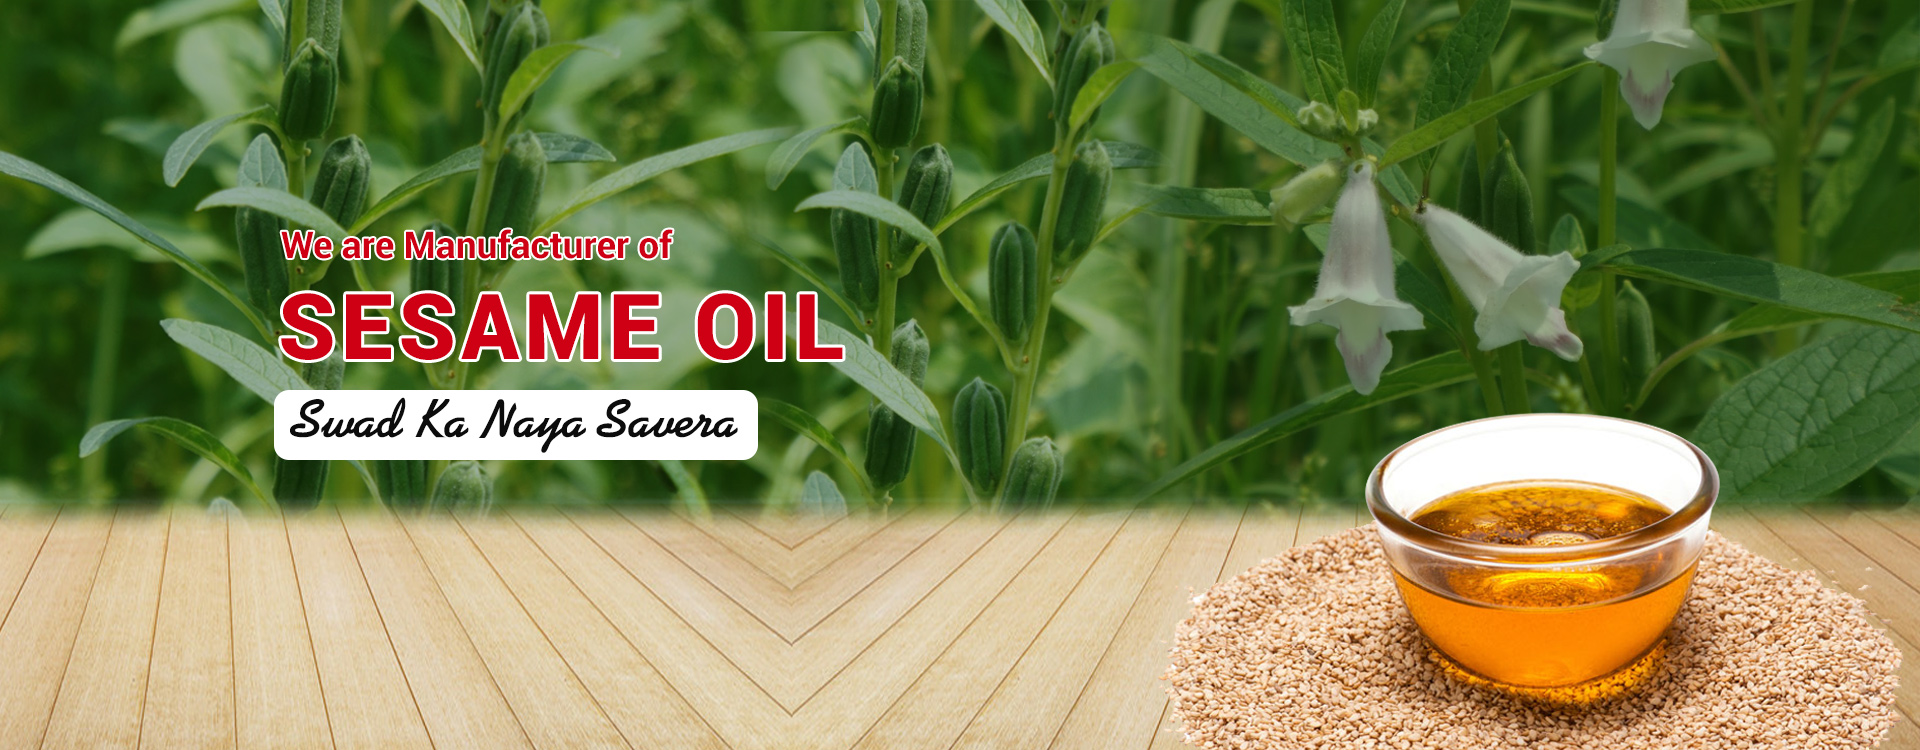 We are Manufacturer of Sesame Oil india